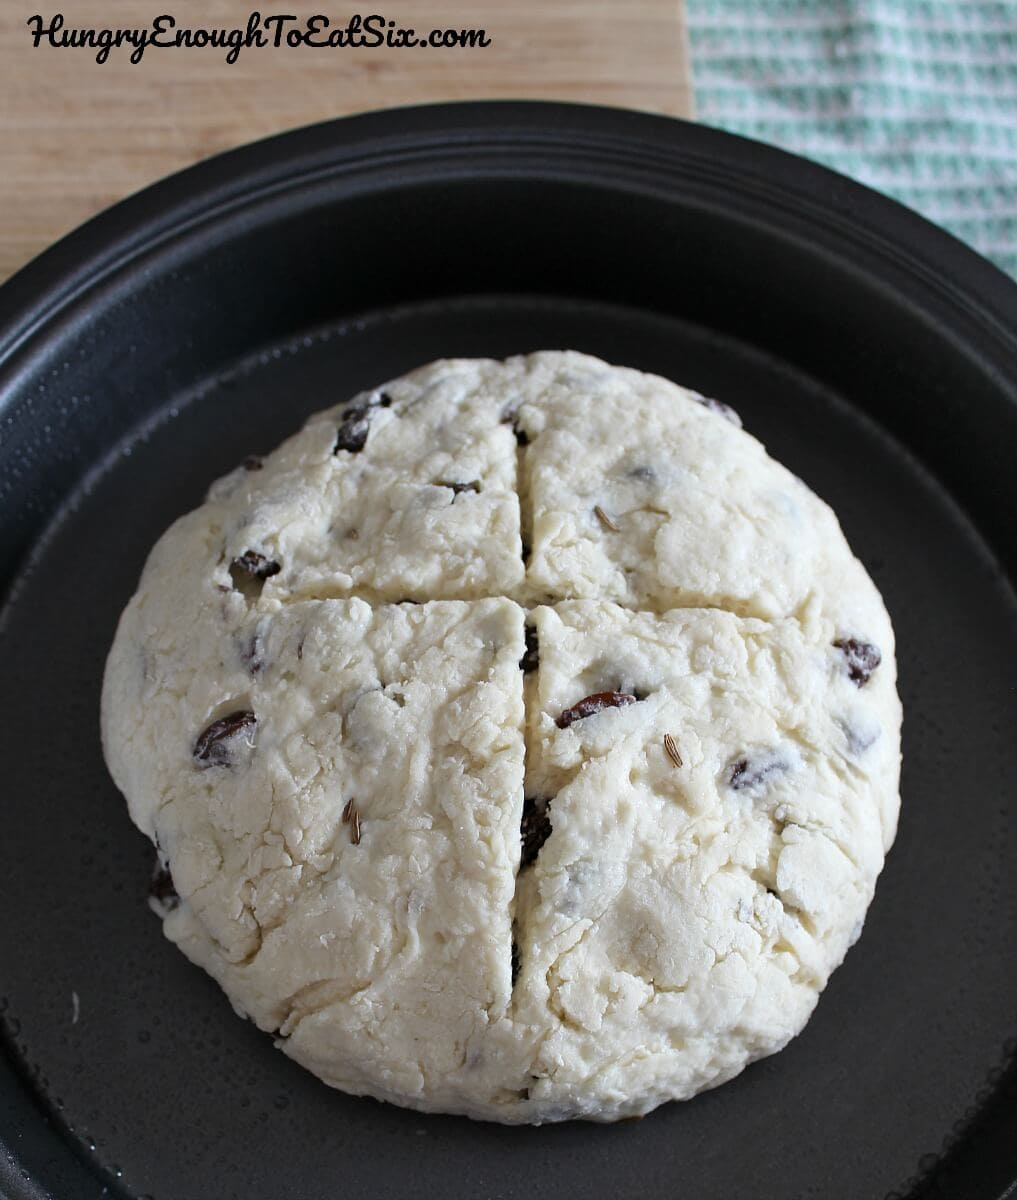 Image of scored and shaped loaf of Aunt Lizzy's Irish Soda Bread in baking pan ready for oven.